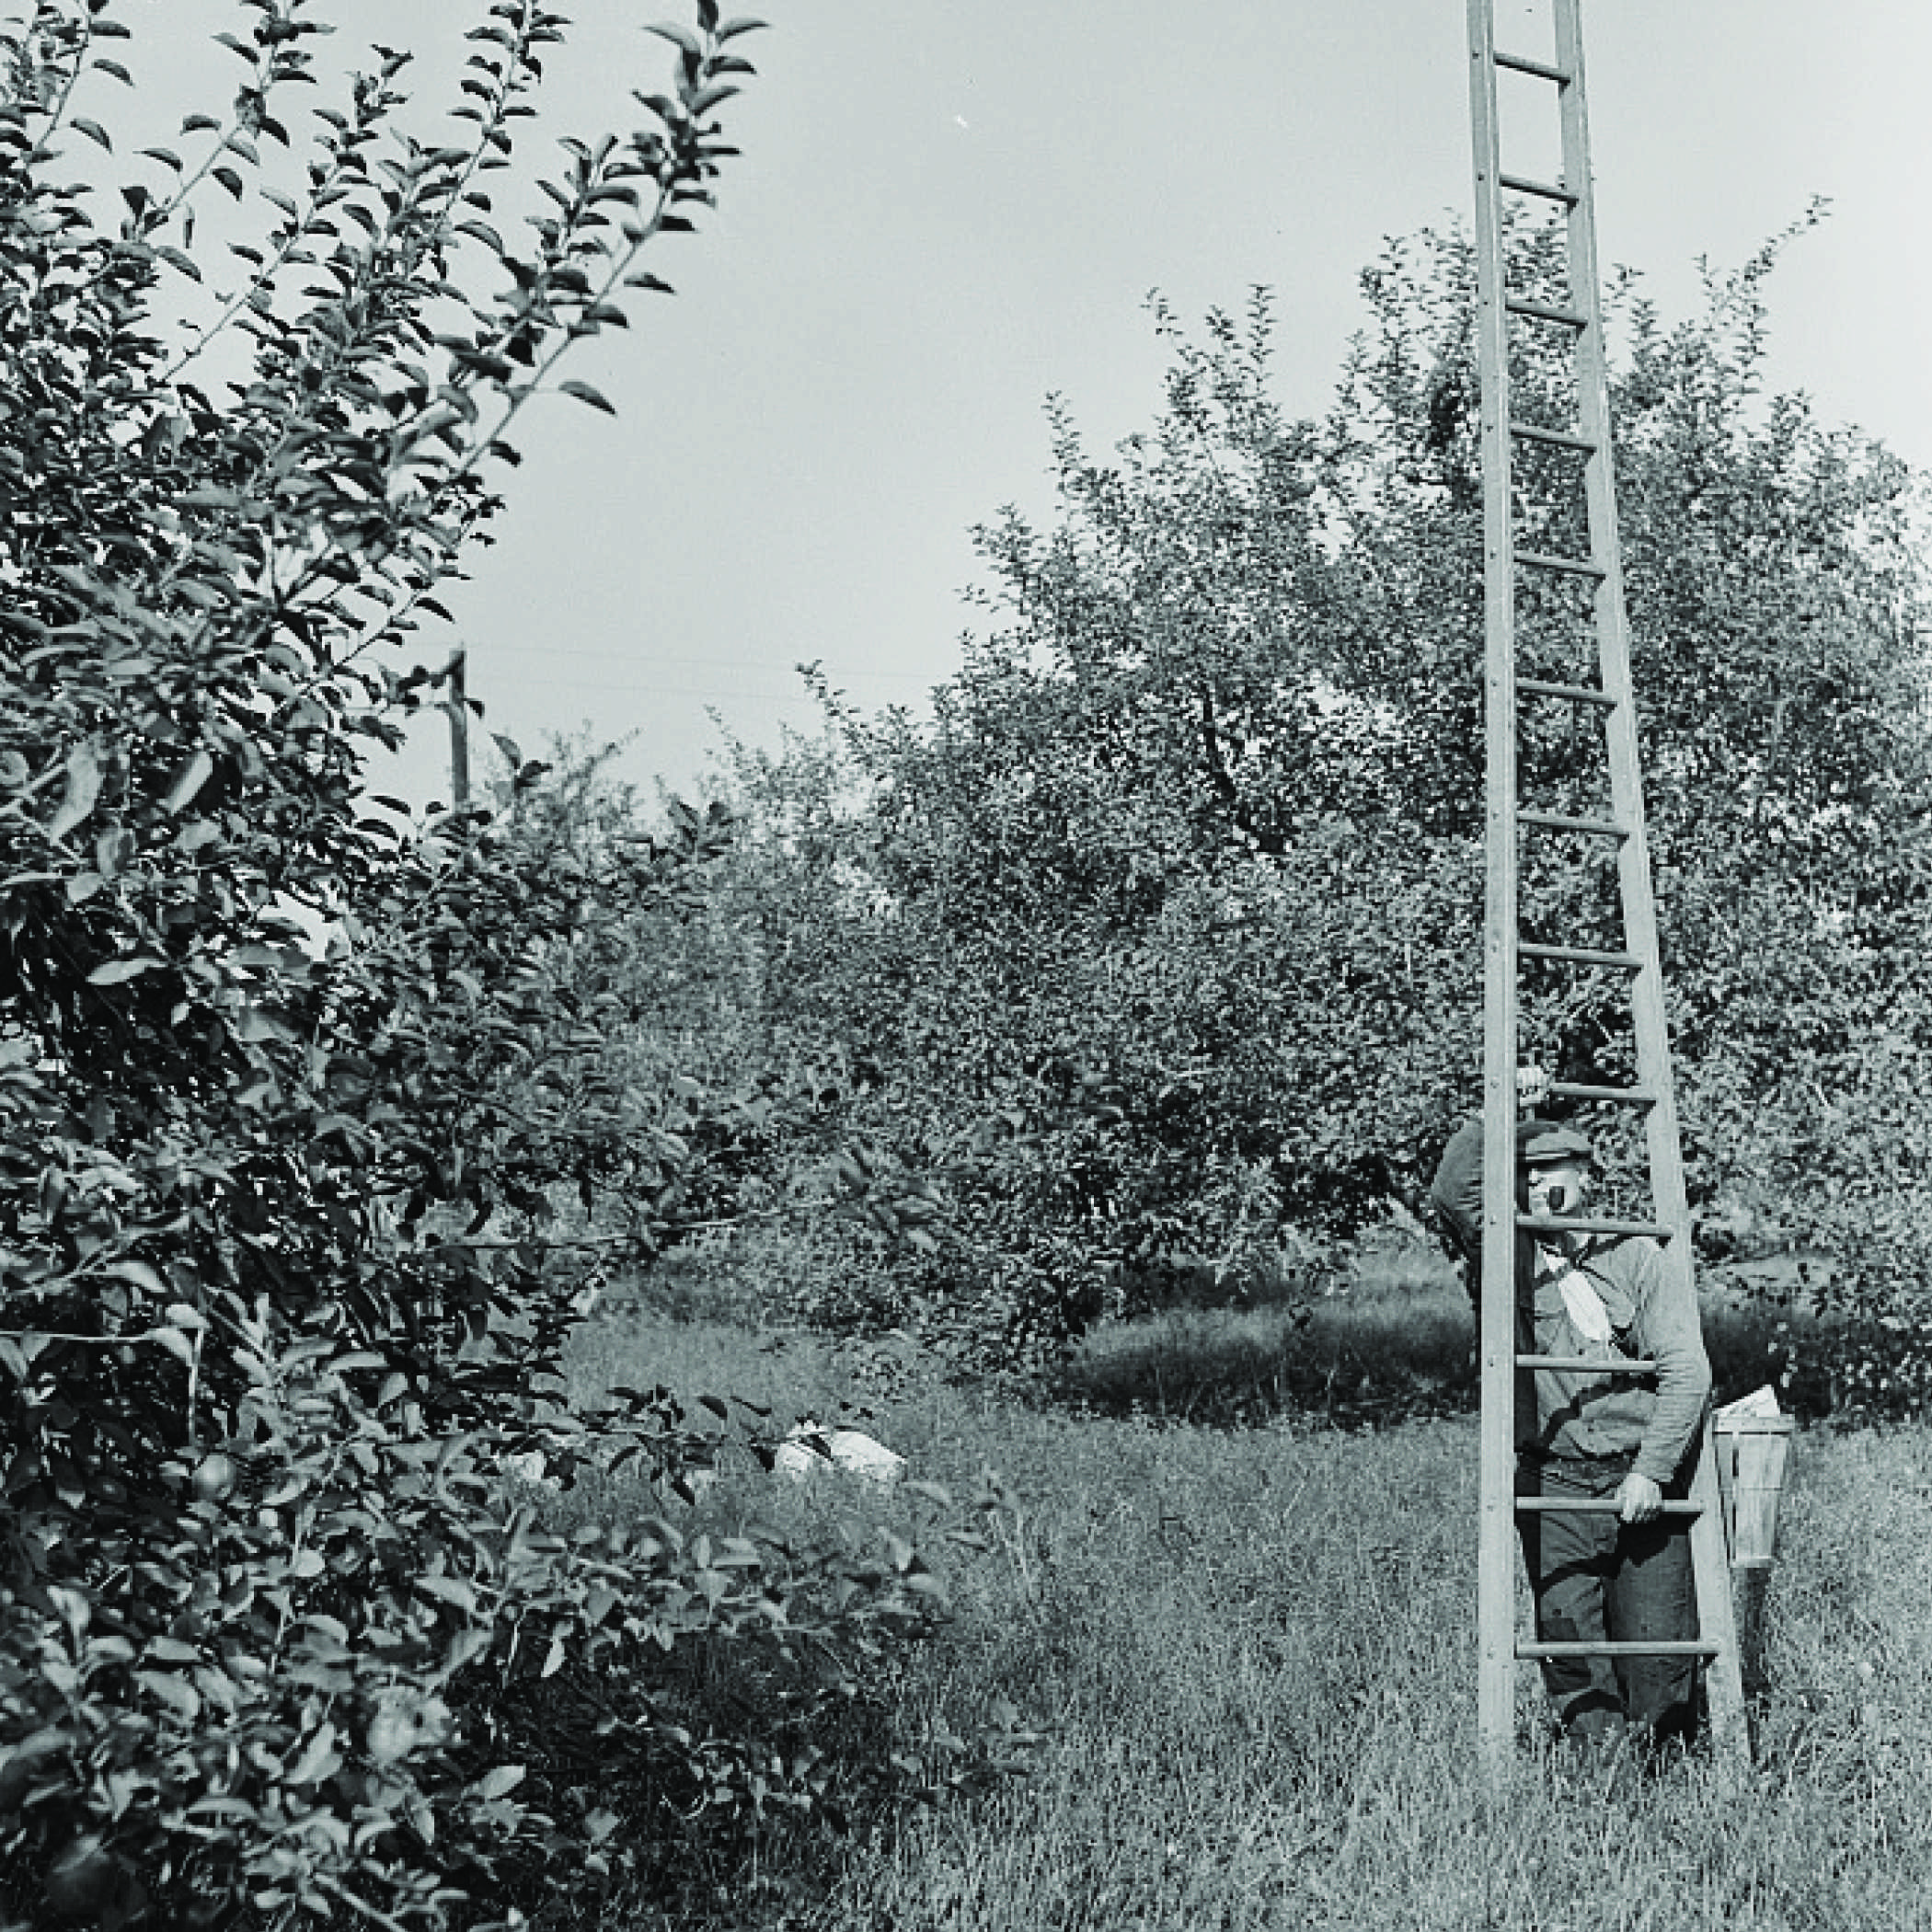 antique photograph of a farmer in an apple orchard holding a ladder upright